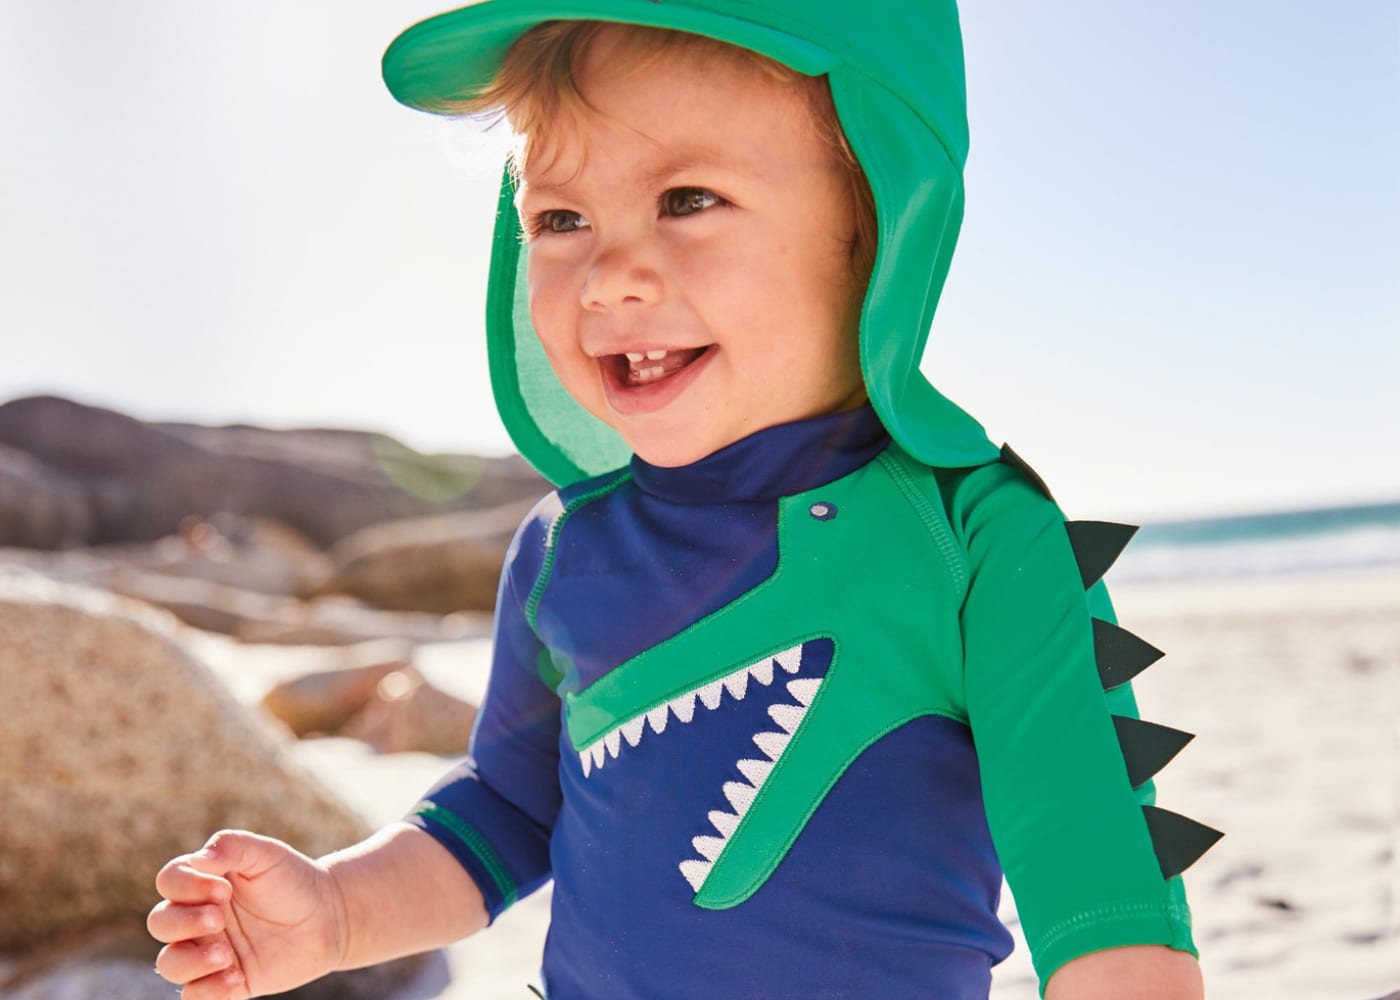 Pure dino-mite! We've rounded up the most roar-some finds for your little dinosaur fans